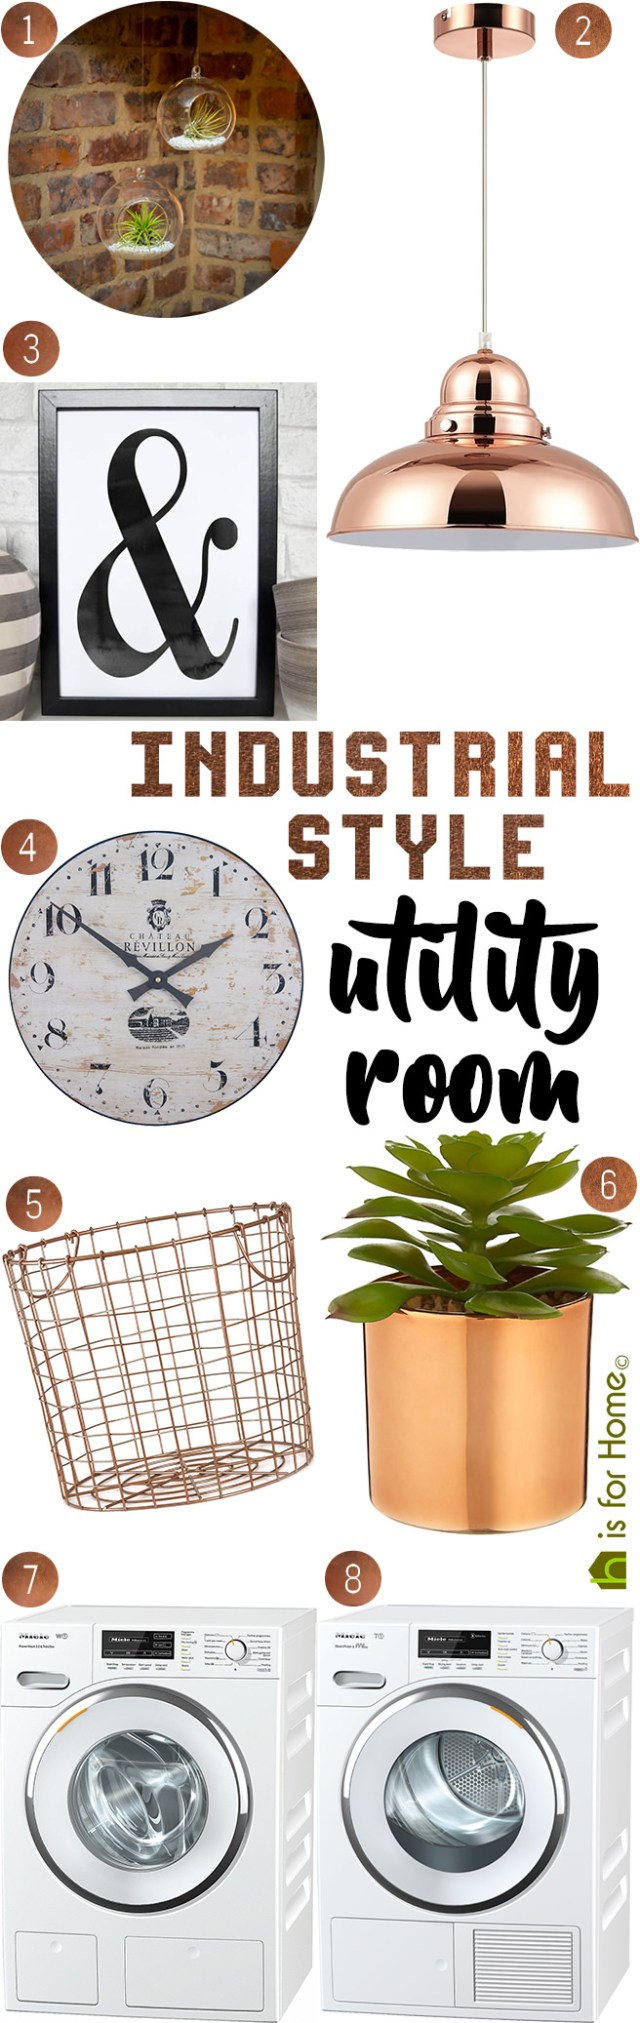 Get their look: Industrial style utility room | H is for Home